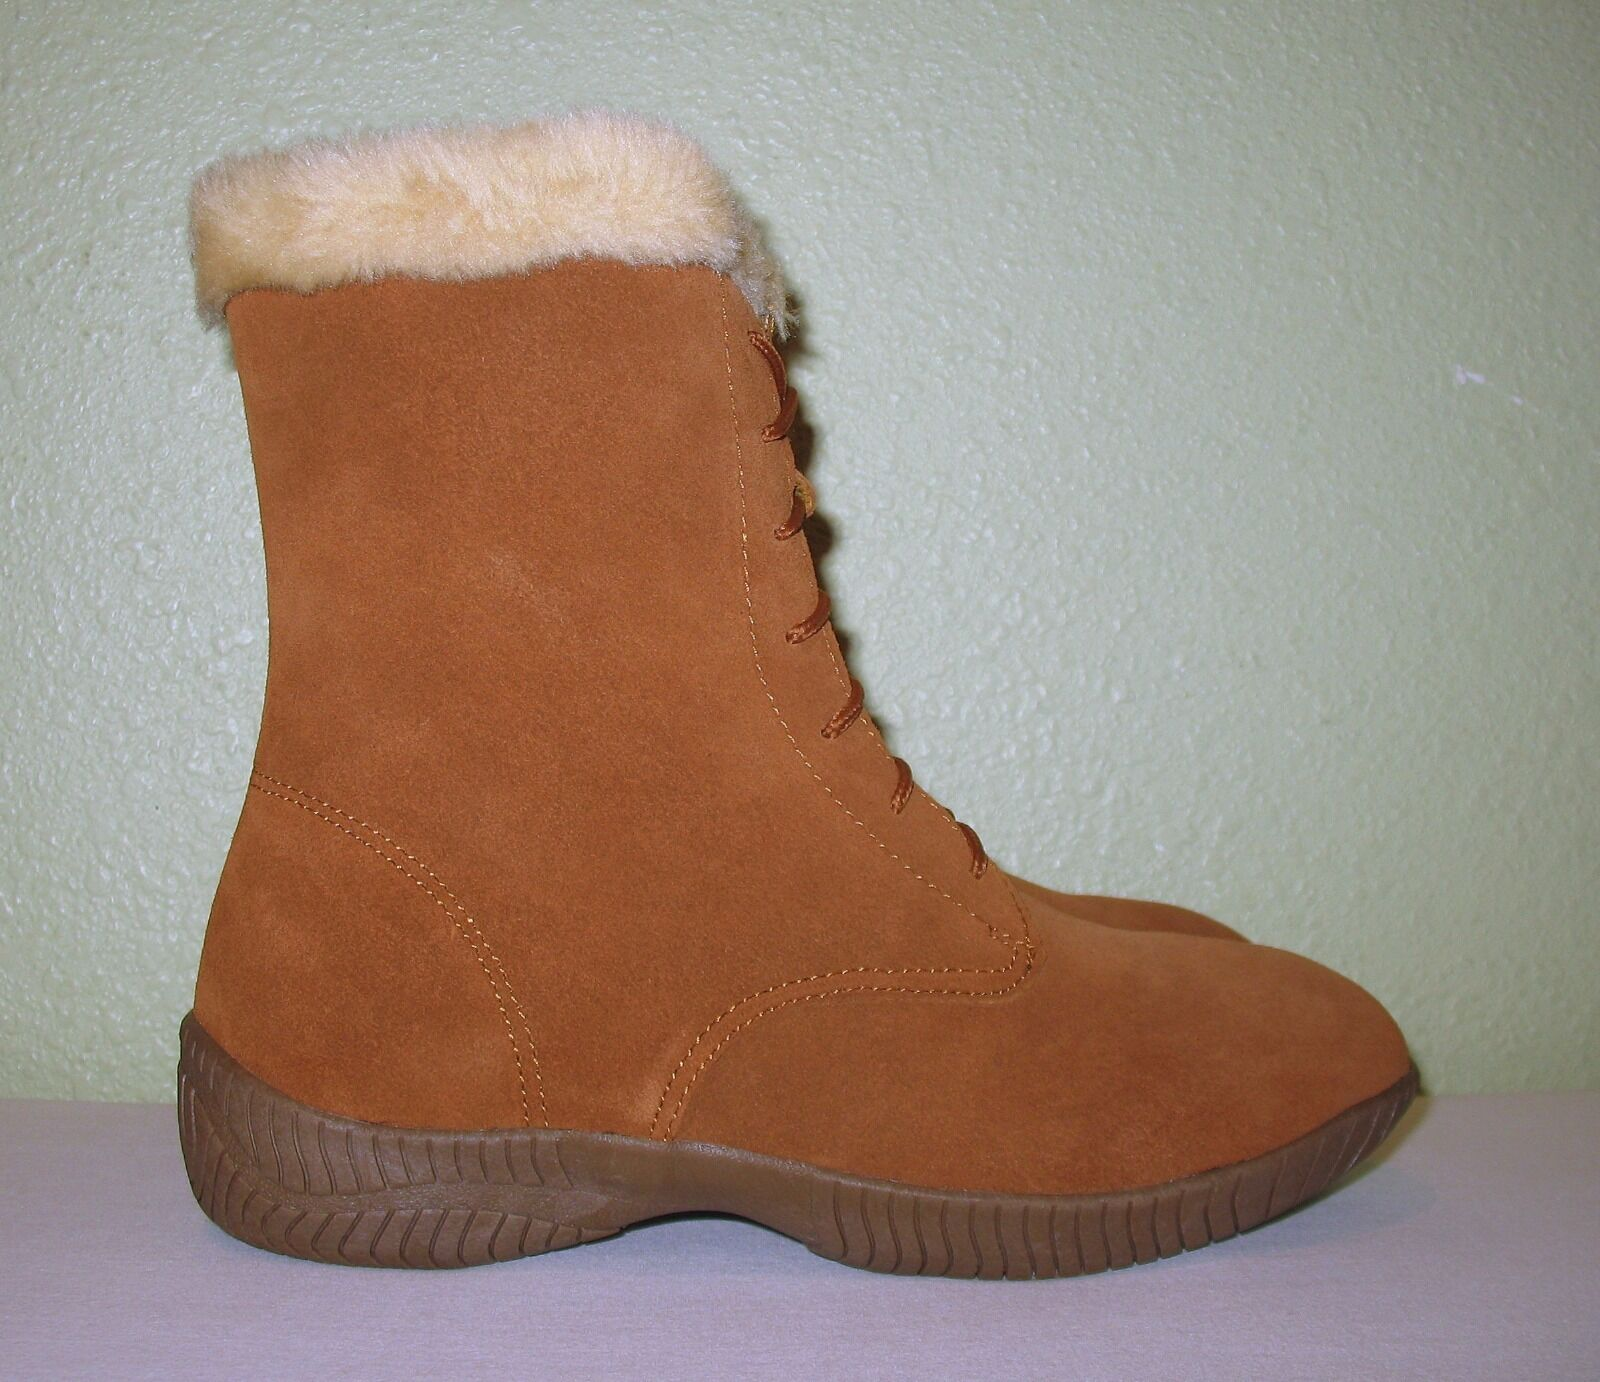 Damenschuhe CHESTNUT BROWN SUEDE LEATHER LEATHER SUEDE LACE-UP WINTER Stiefel NEW US 9 EUR 39 39.5 40 958f2c